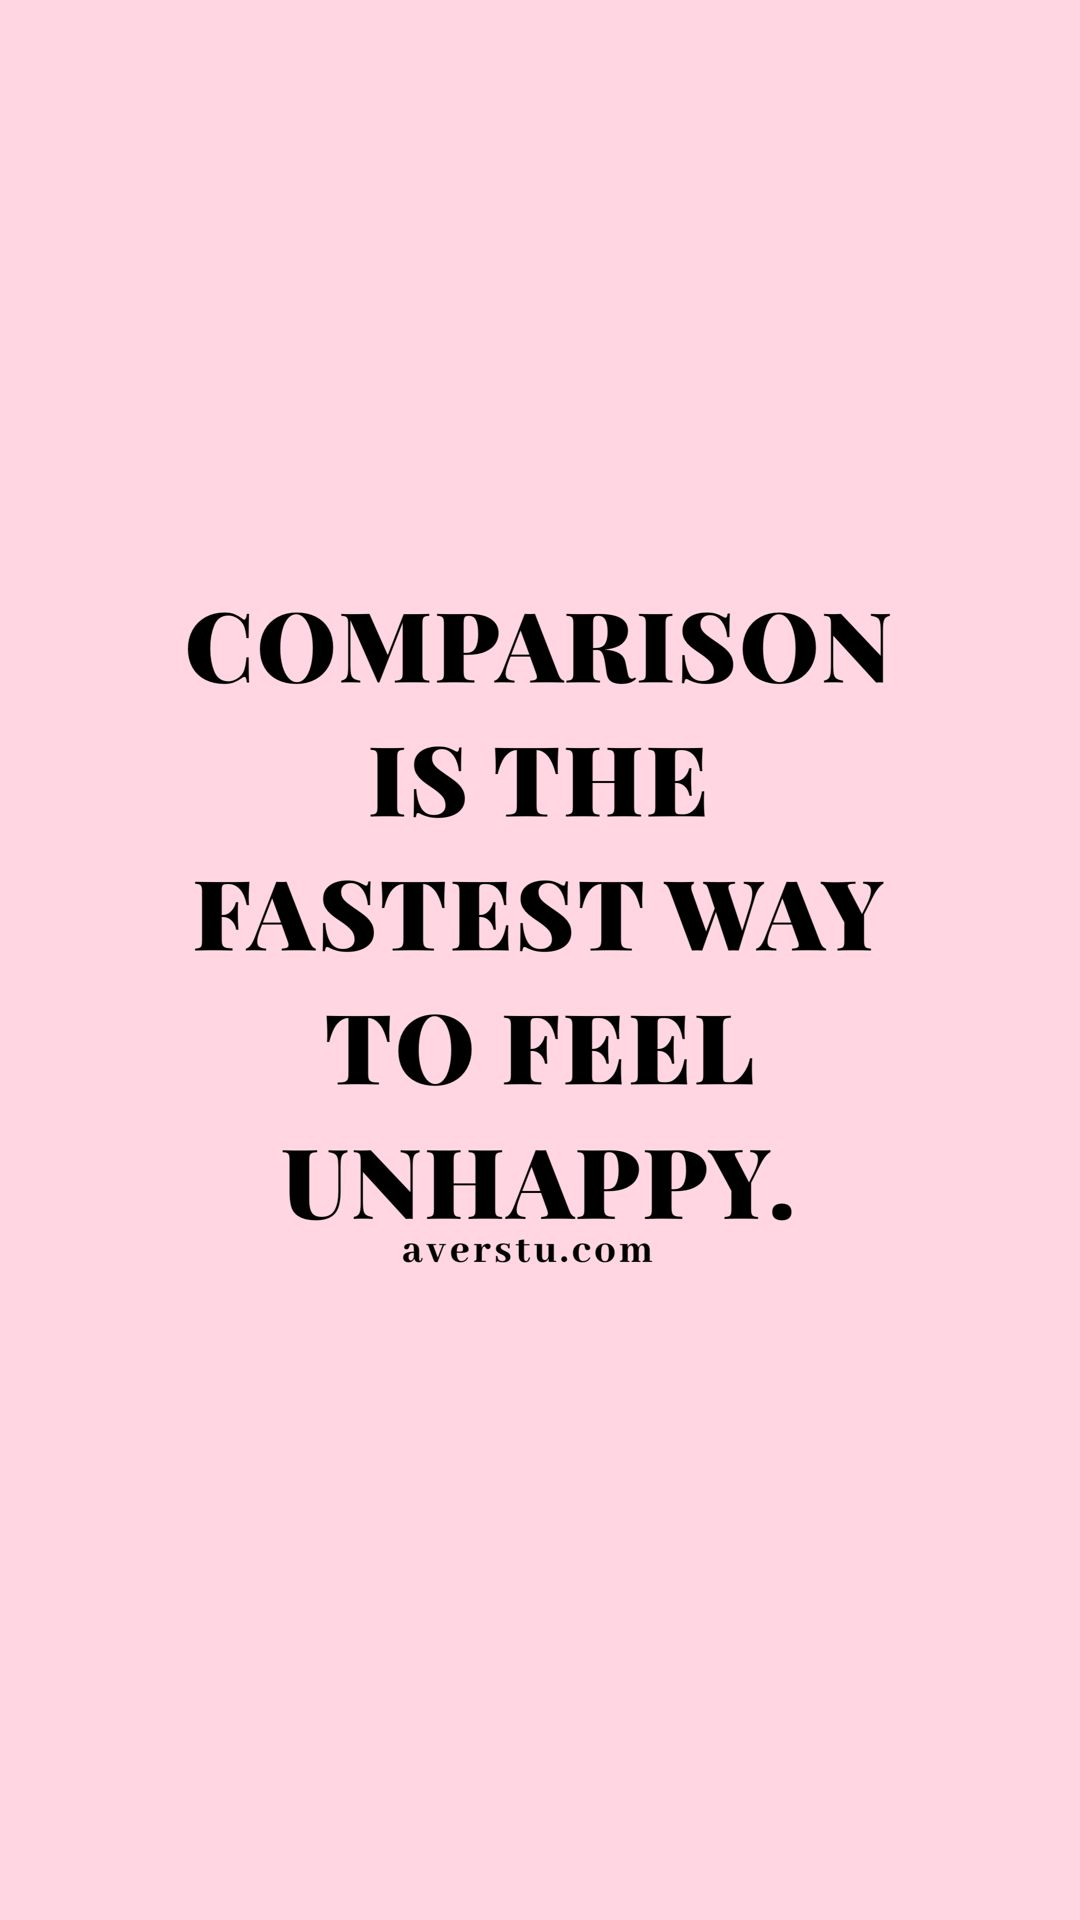 150 Top Self Love Quotes To Always Remember Part 5 The Ultimate Inspirational Life Quotes Comparison Quotes Life Is Too Short Quotes Life Quotes